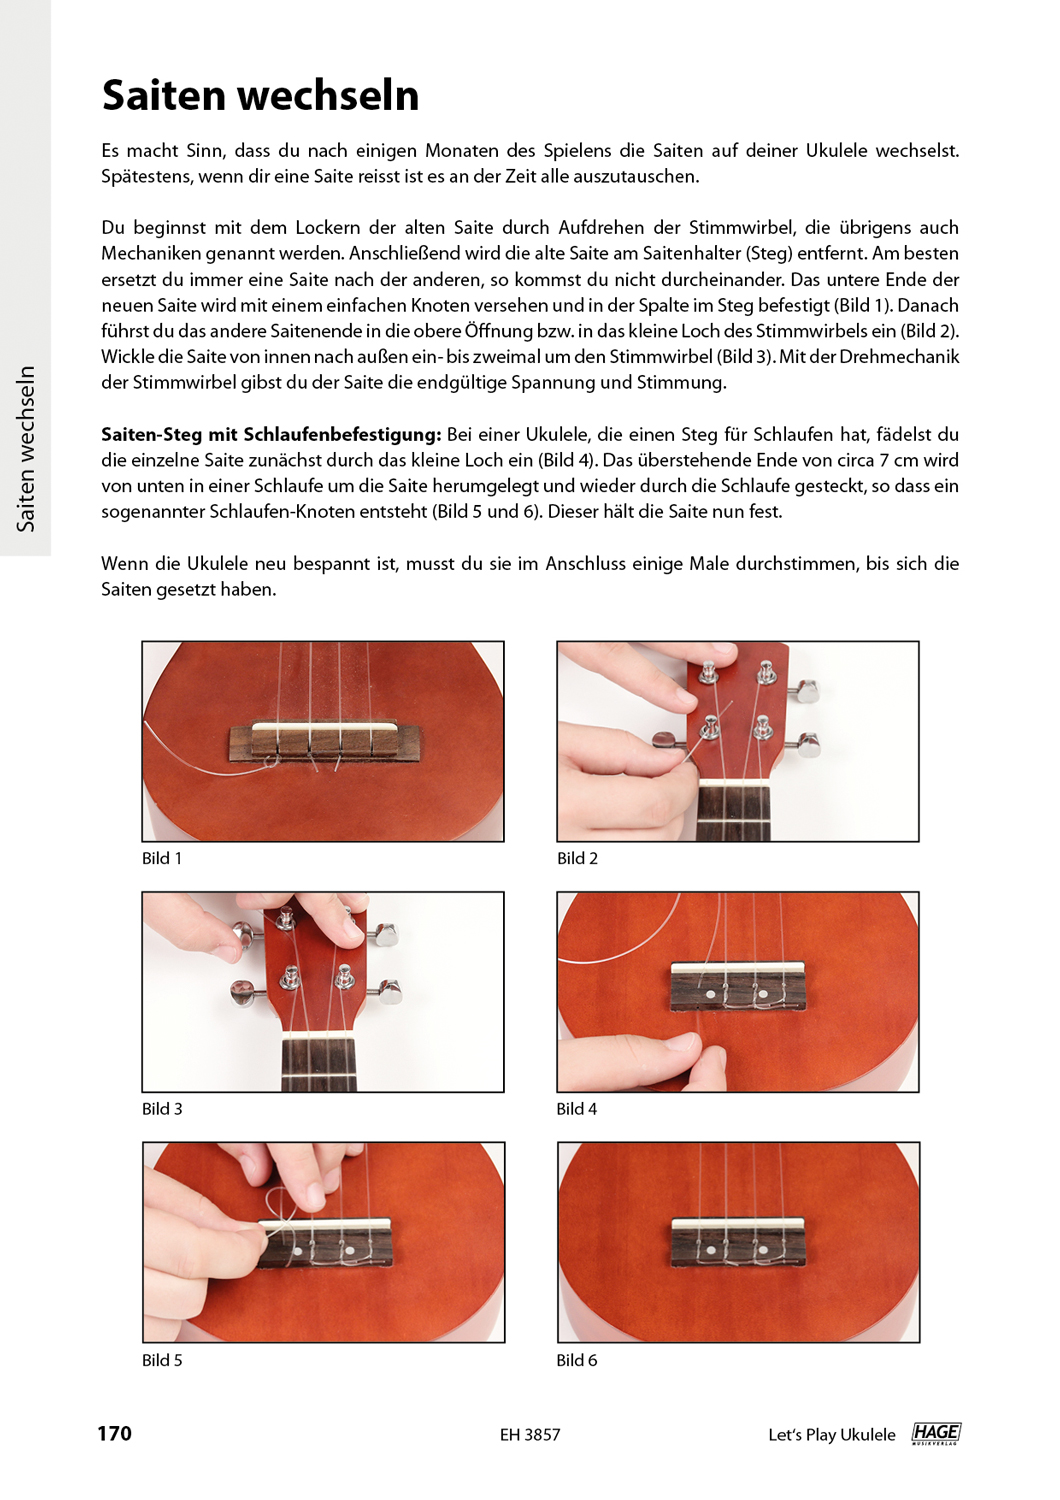 Let's Play Ukulele (with 2 CDs) Pages 11